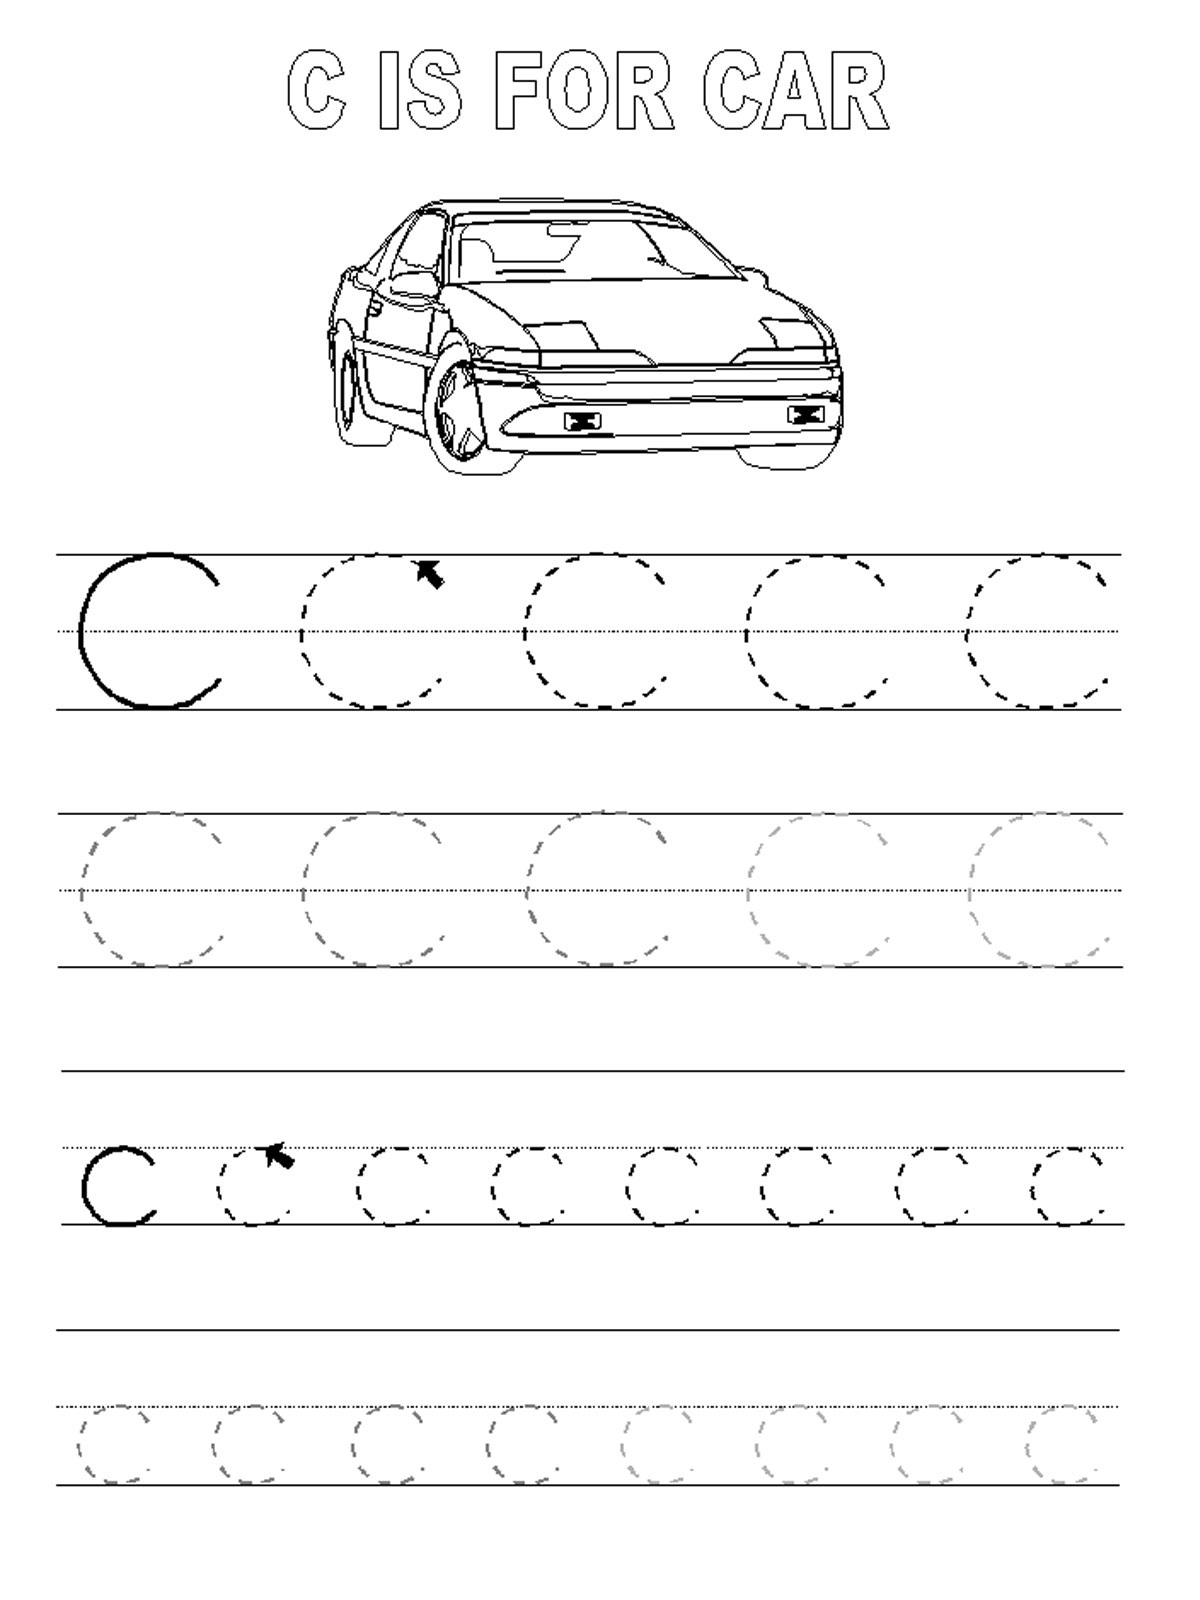 Worksheets Letter C Worksheets Preschool trace the letter c worksheets activity shelter 2016